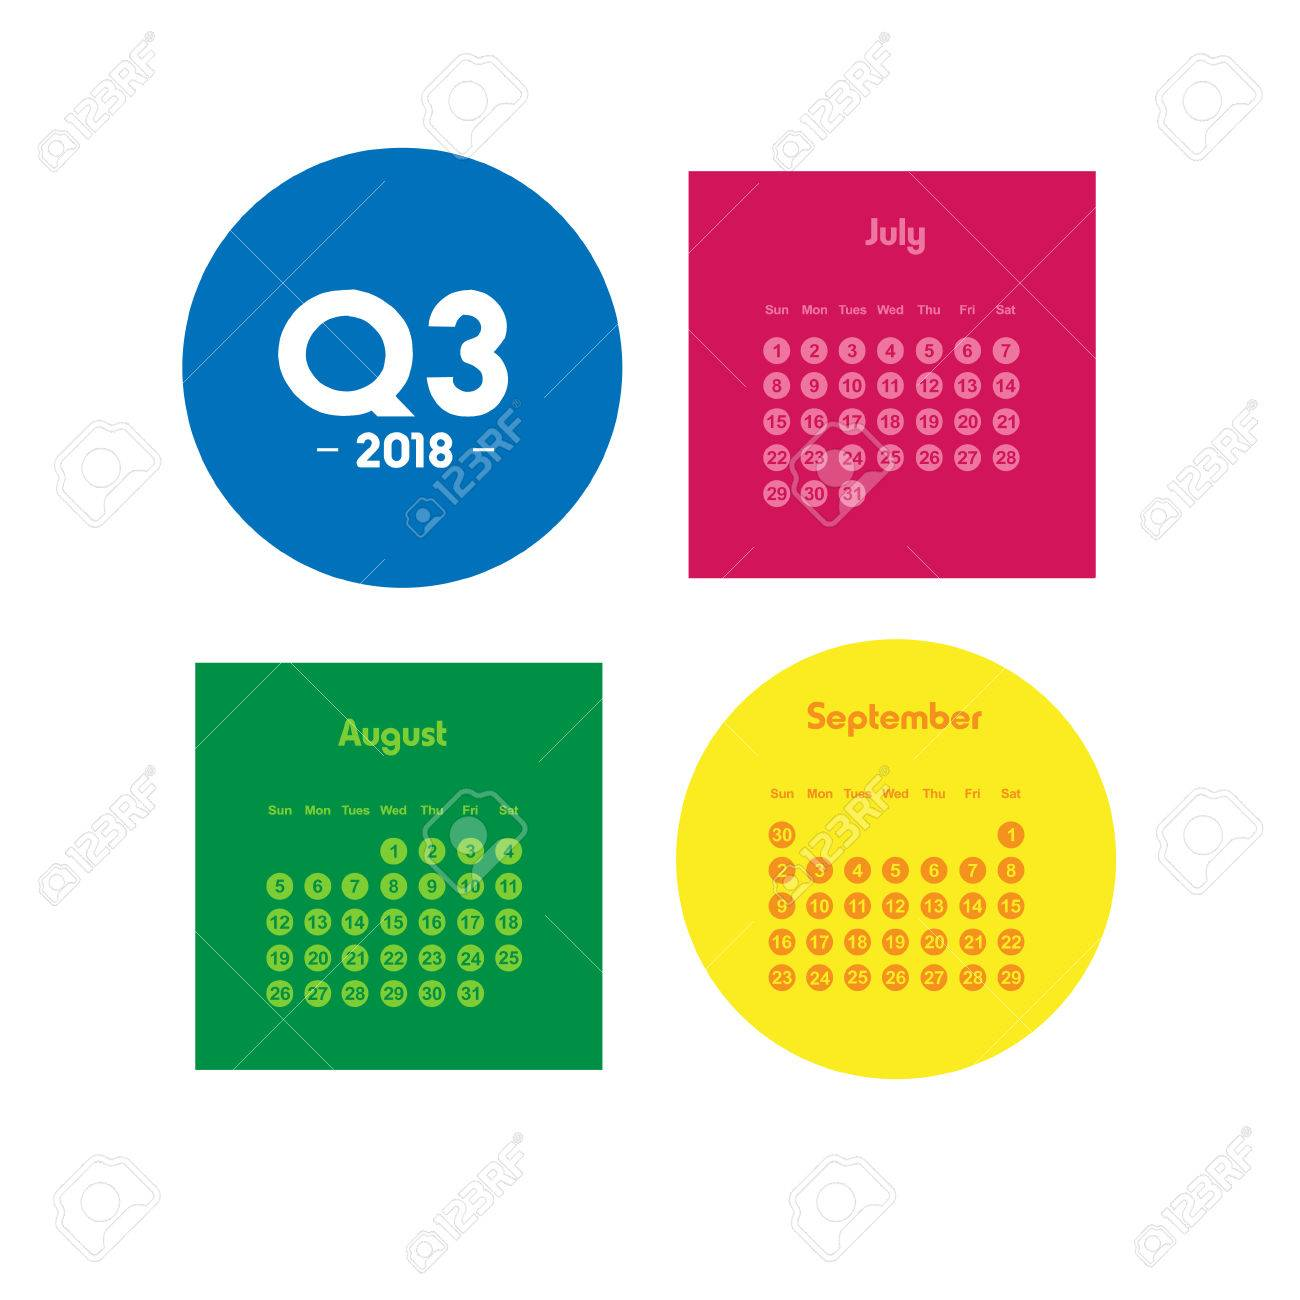 1300x1300 Third Quarter Of Calendar 2018 Royalty Free Cliparts, Vectors,